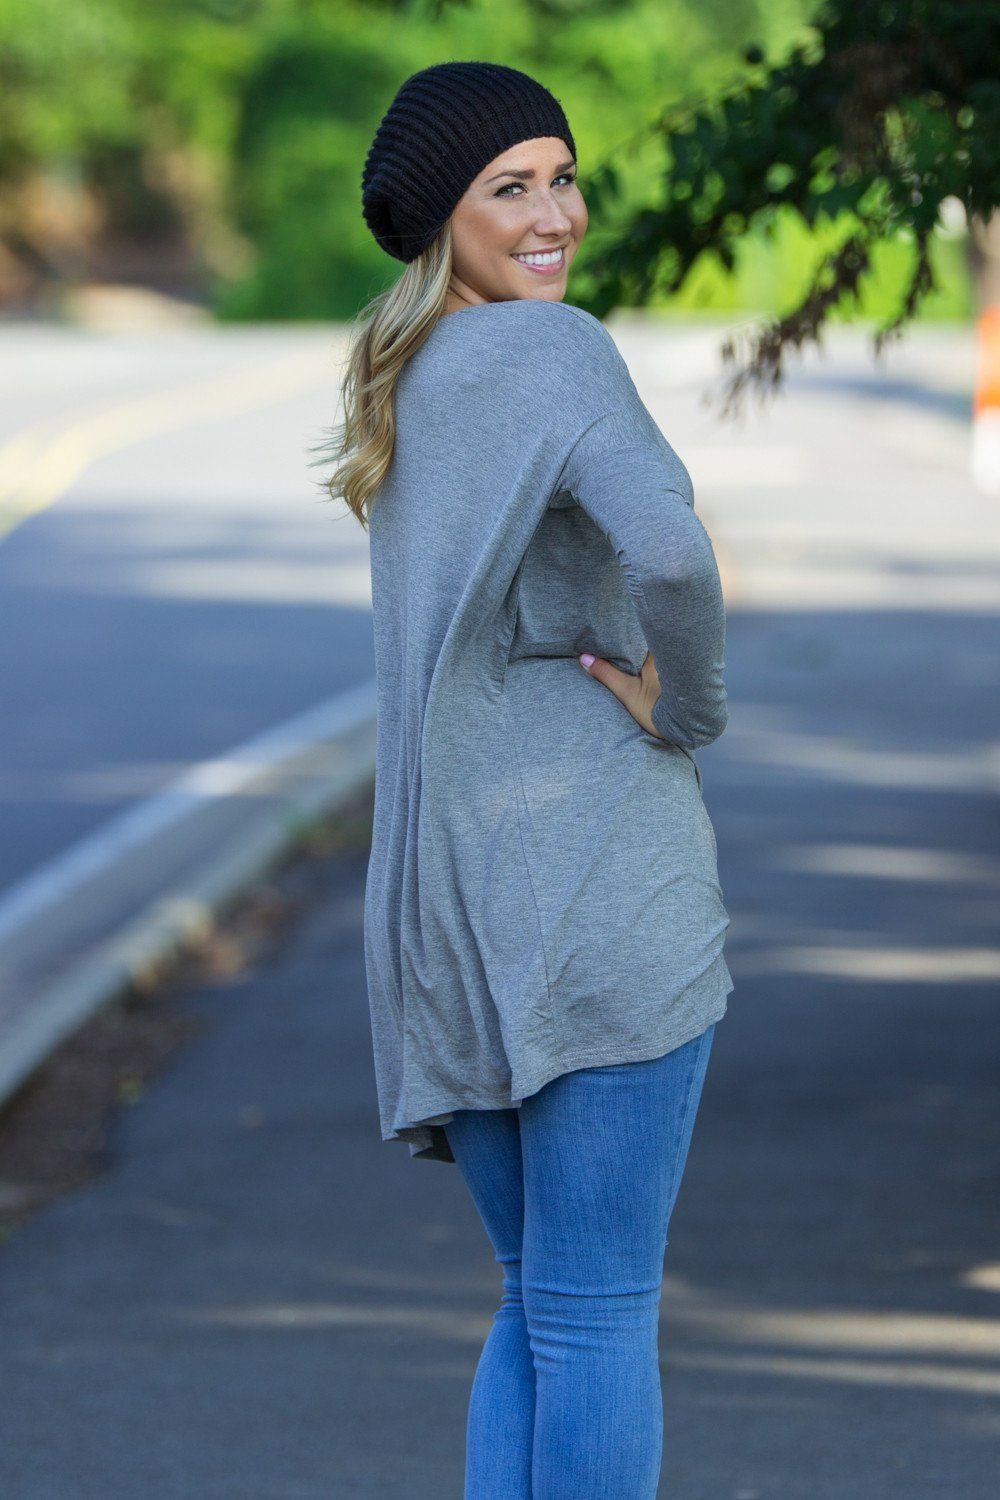 Long Sleeve V-Neck Piko Tunic - Heather Grey - Piko Clothing